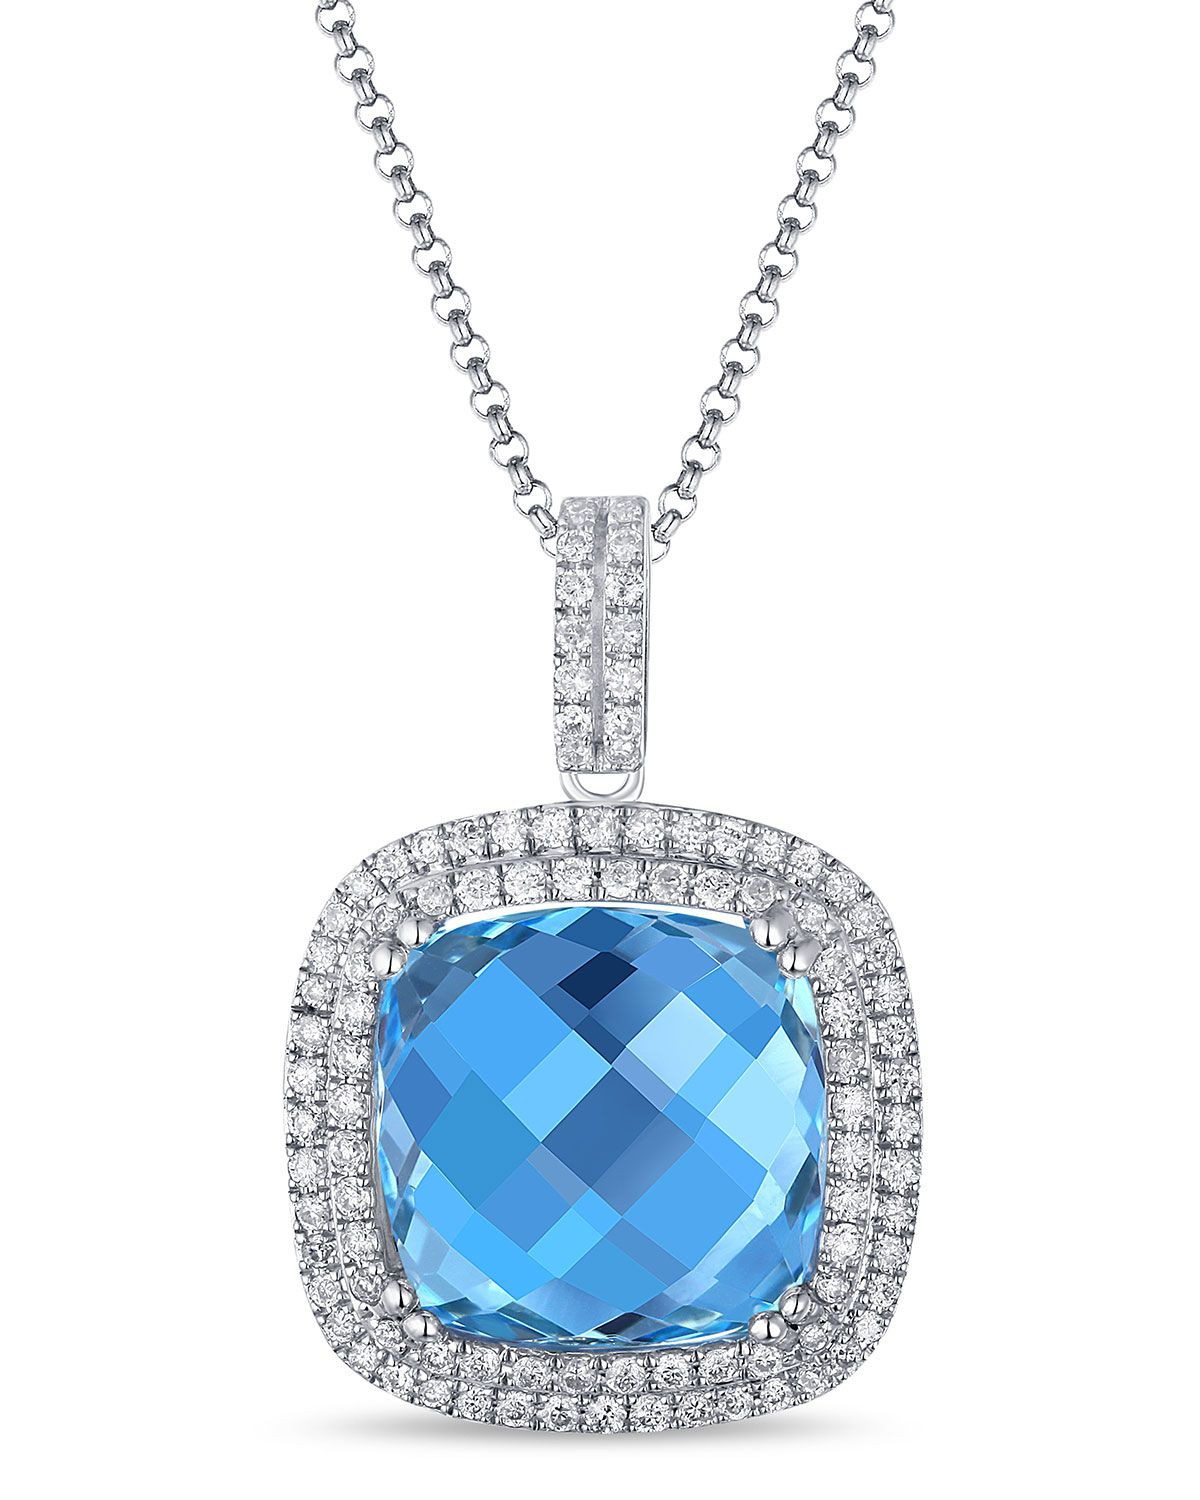 Diana m jewels 14k white gold cushion cut blue topaz diamond diana m jewels 14k white gold cushion cut blue topaz diamond pendant necklace aloadofball Images